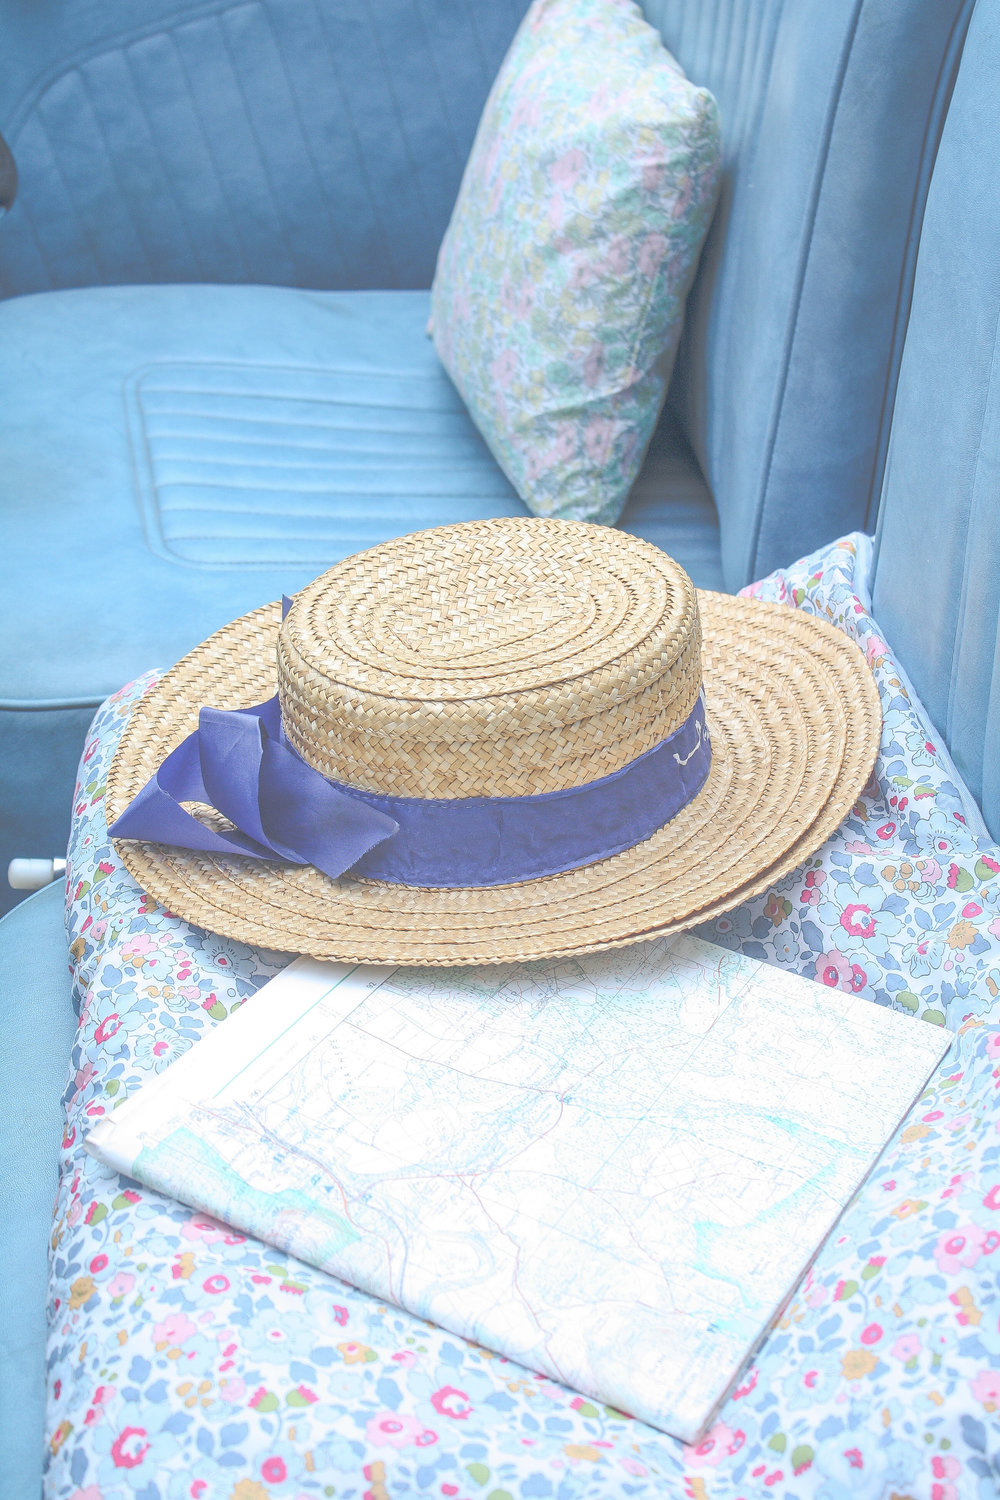 Obviously the best kind of travel is in Morris Minor with  Liberty print cushions  and a dashing gentleman